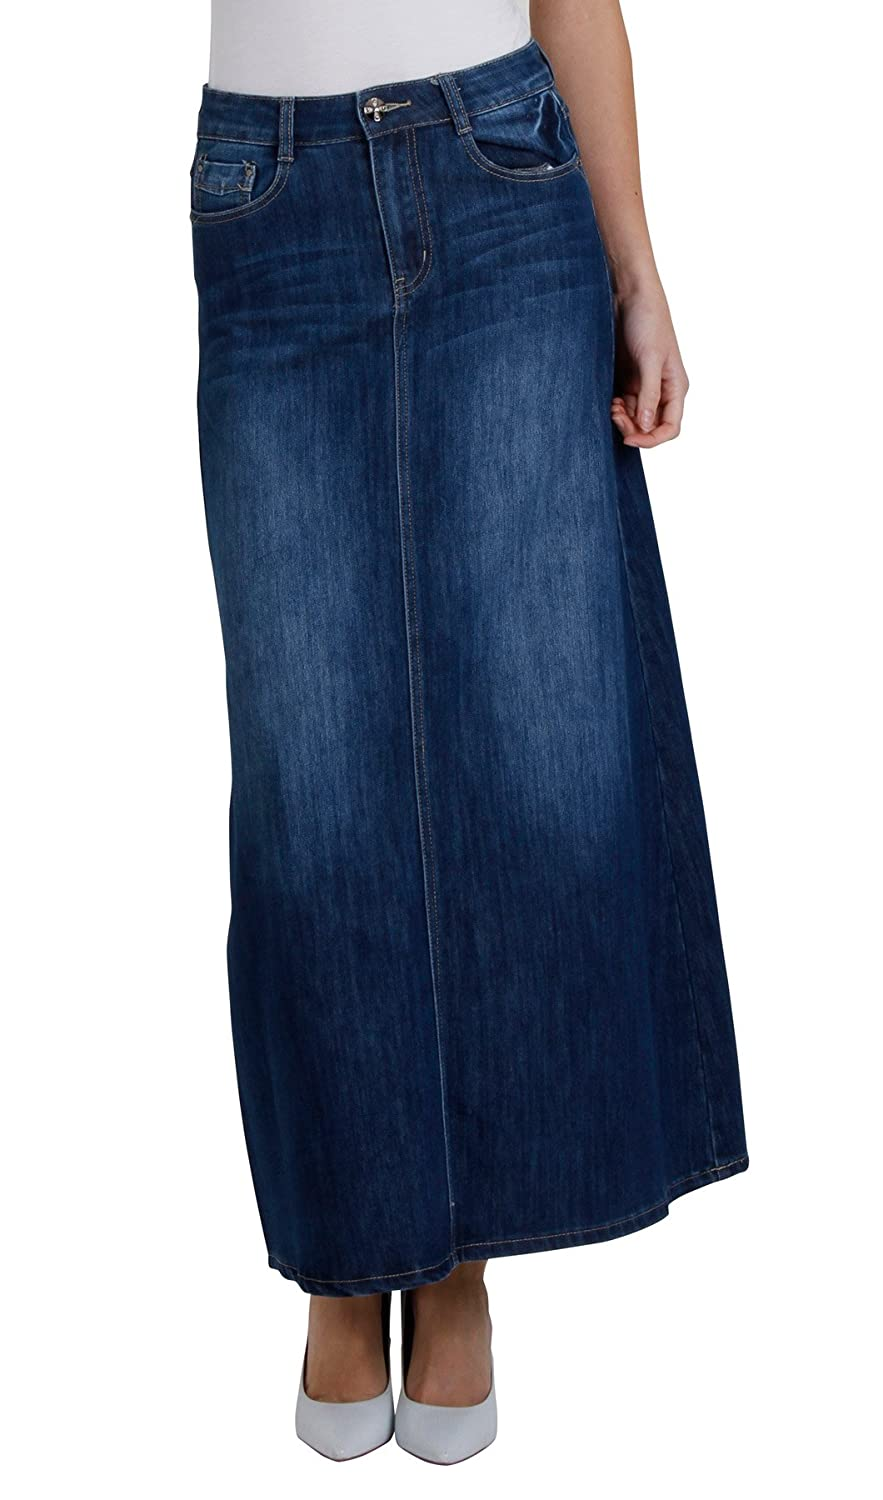 b73fcd12aed0 Cindy H Long Stonewash Denim Skirt SKIRT68 Womens Maxi Skirt Full Length Denim  Skirt at Amazon Women s Clothing store